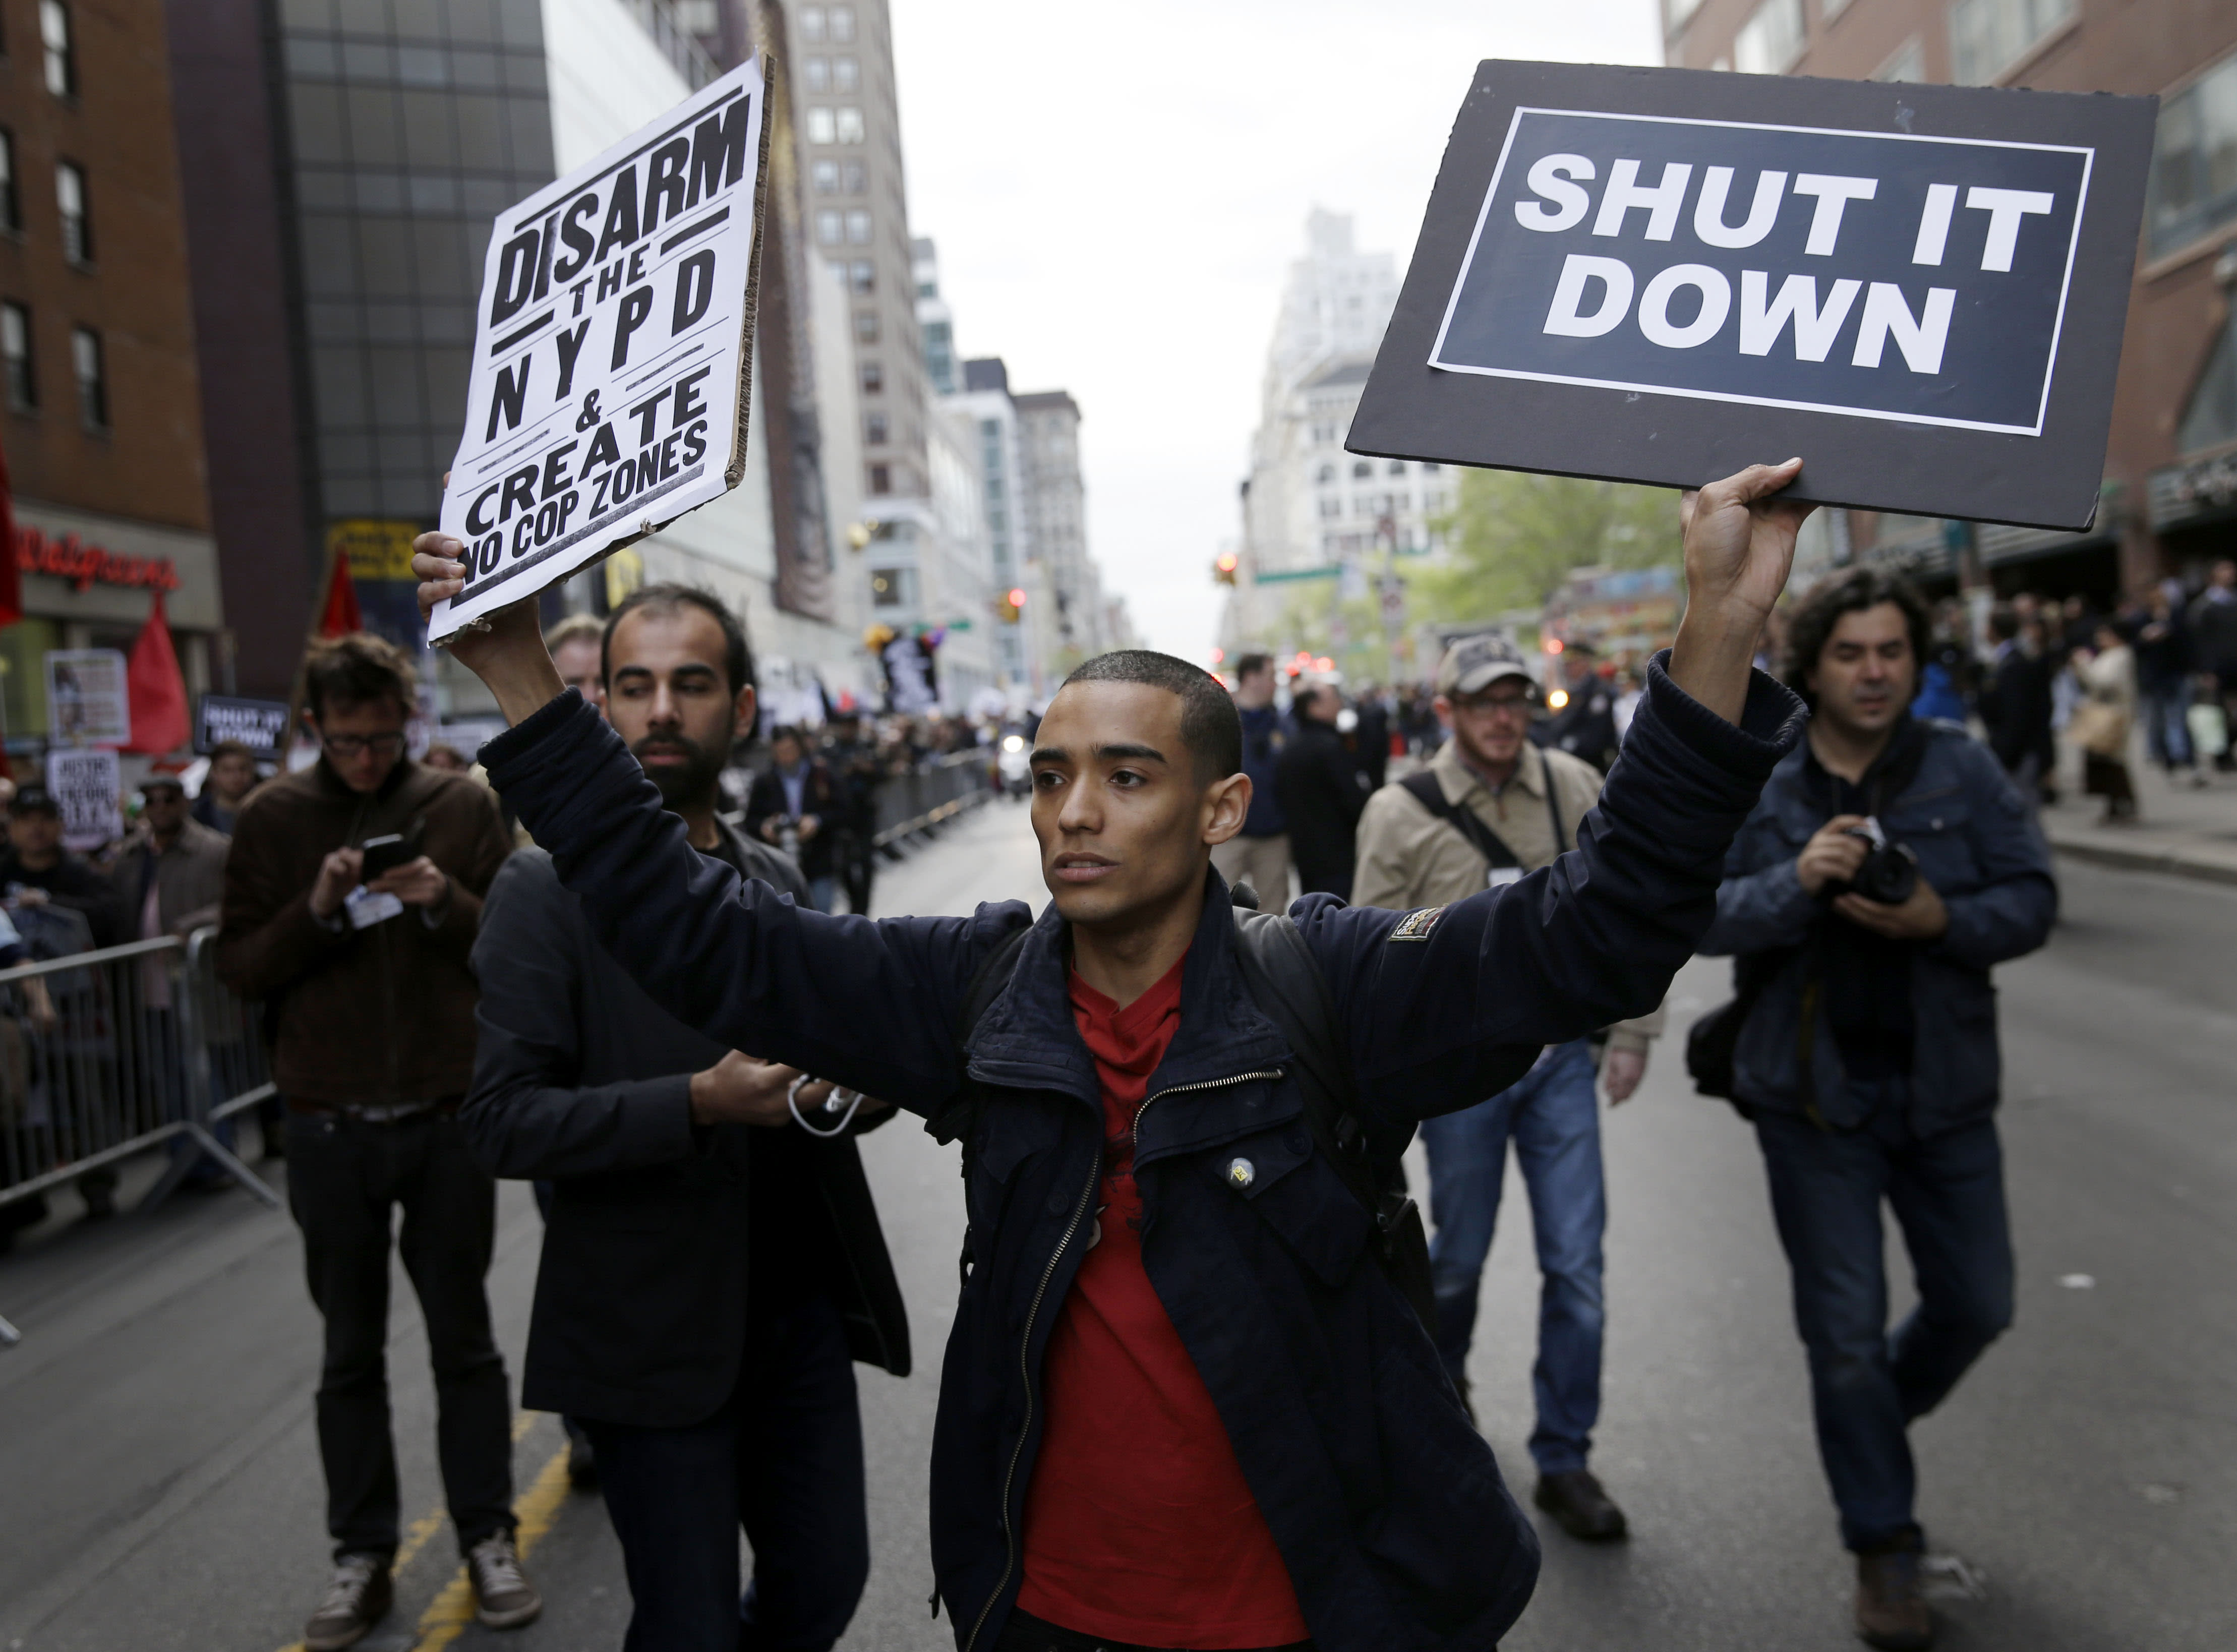 Latest on Baltimore protests: Thousands march across US